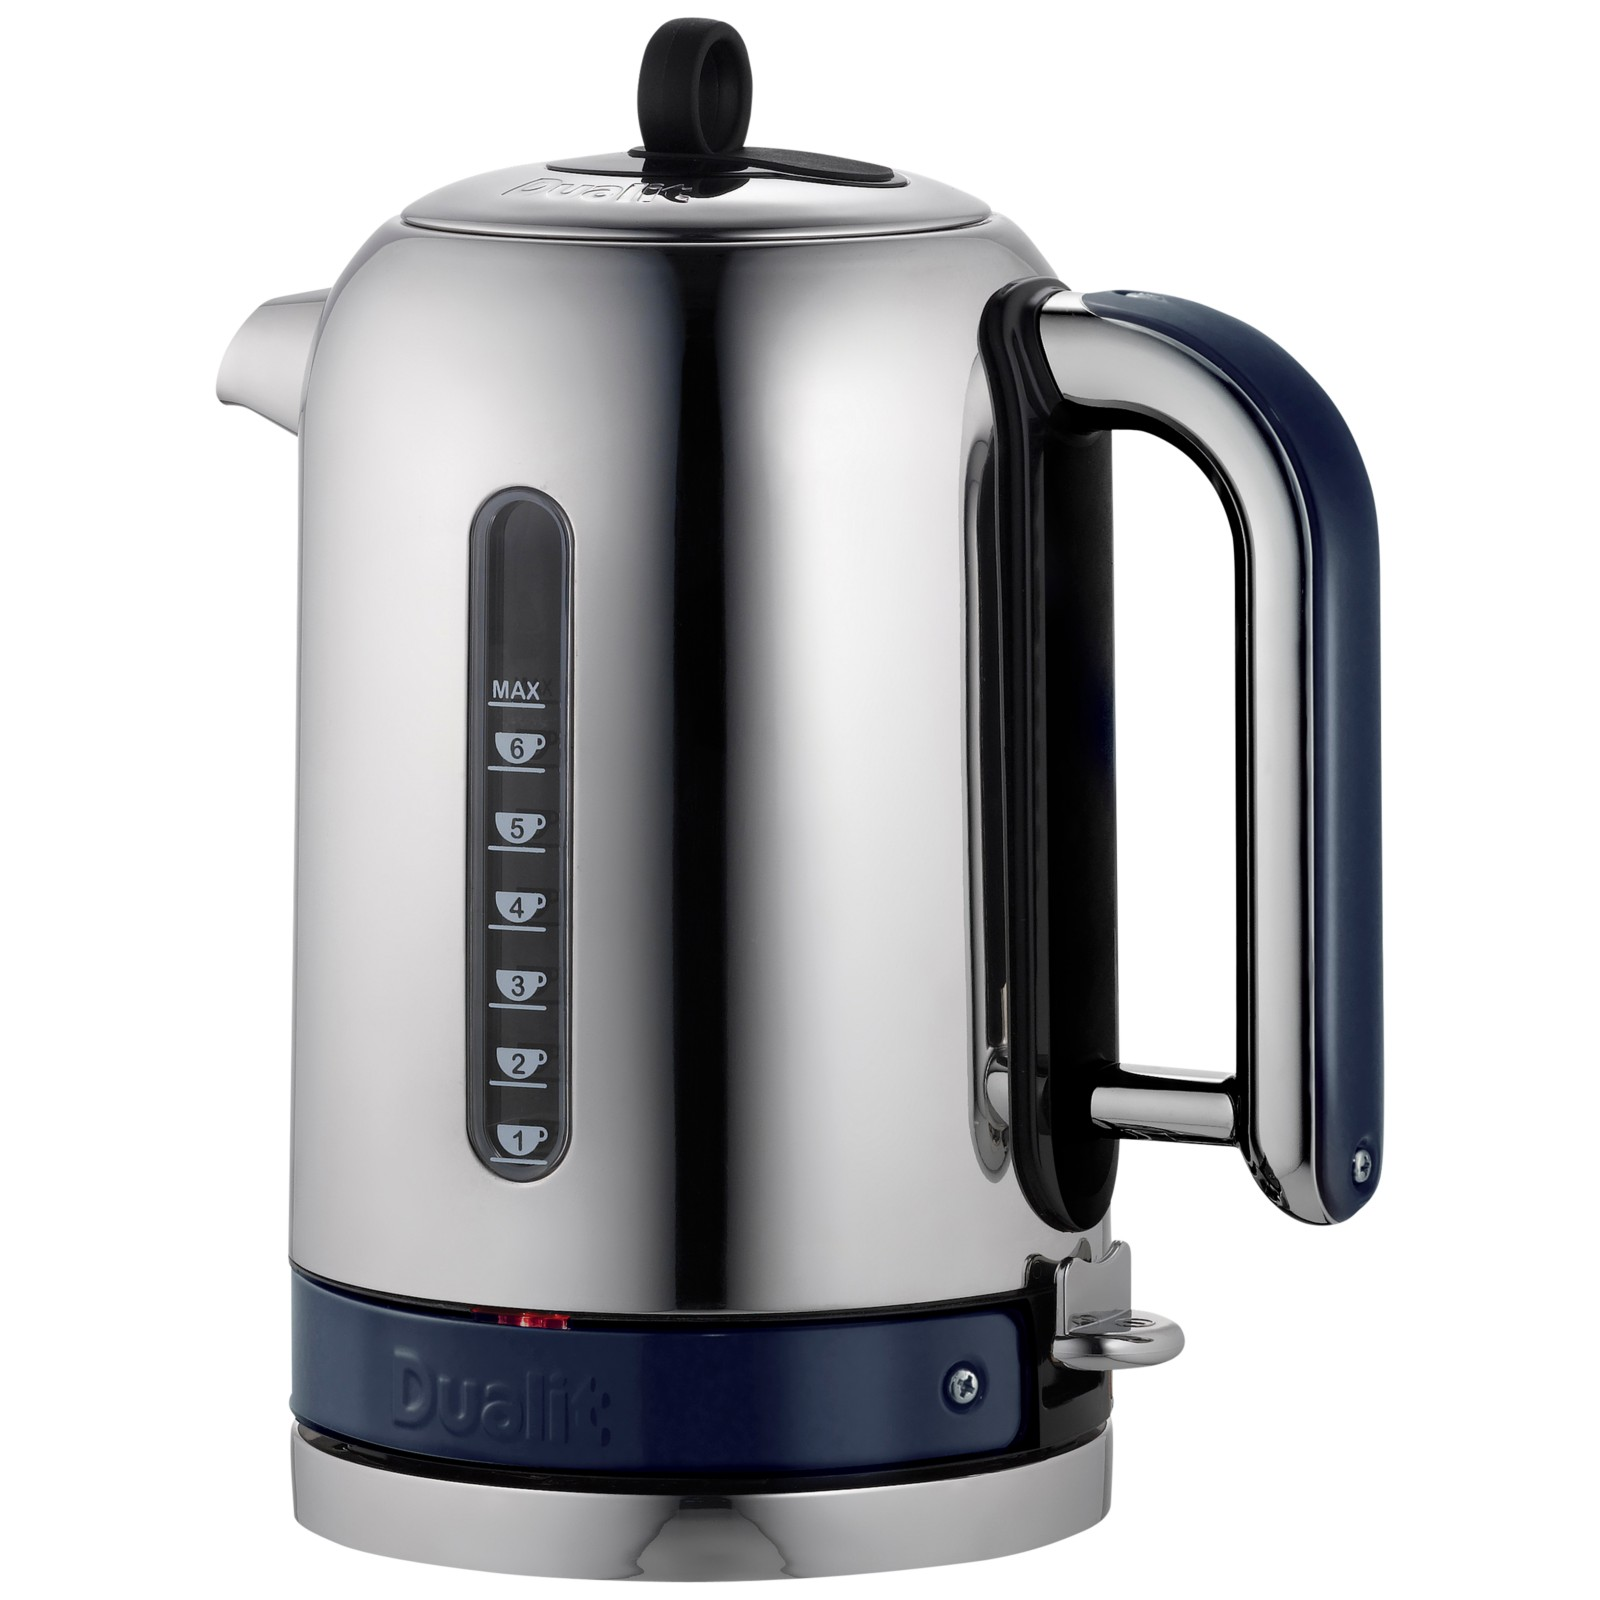 Dualit Made to Order Classic Kettle Stainless Steel/Steel Blue Matt